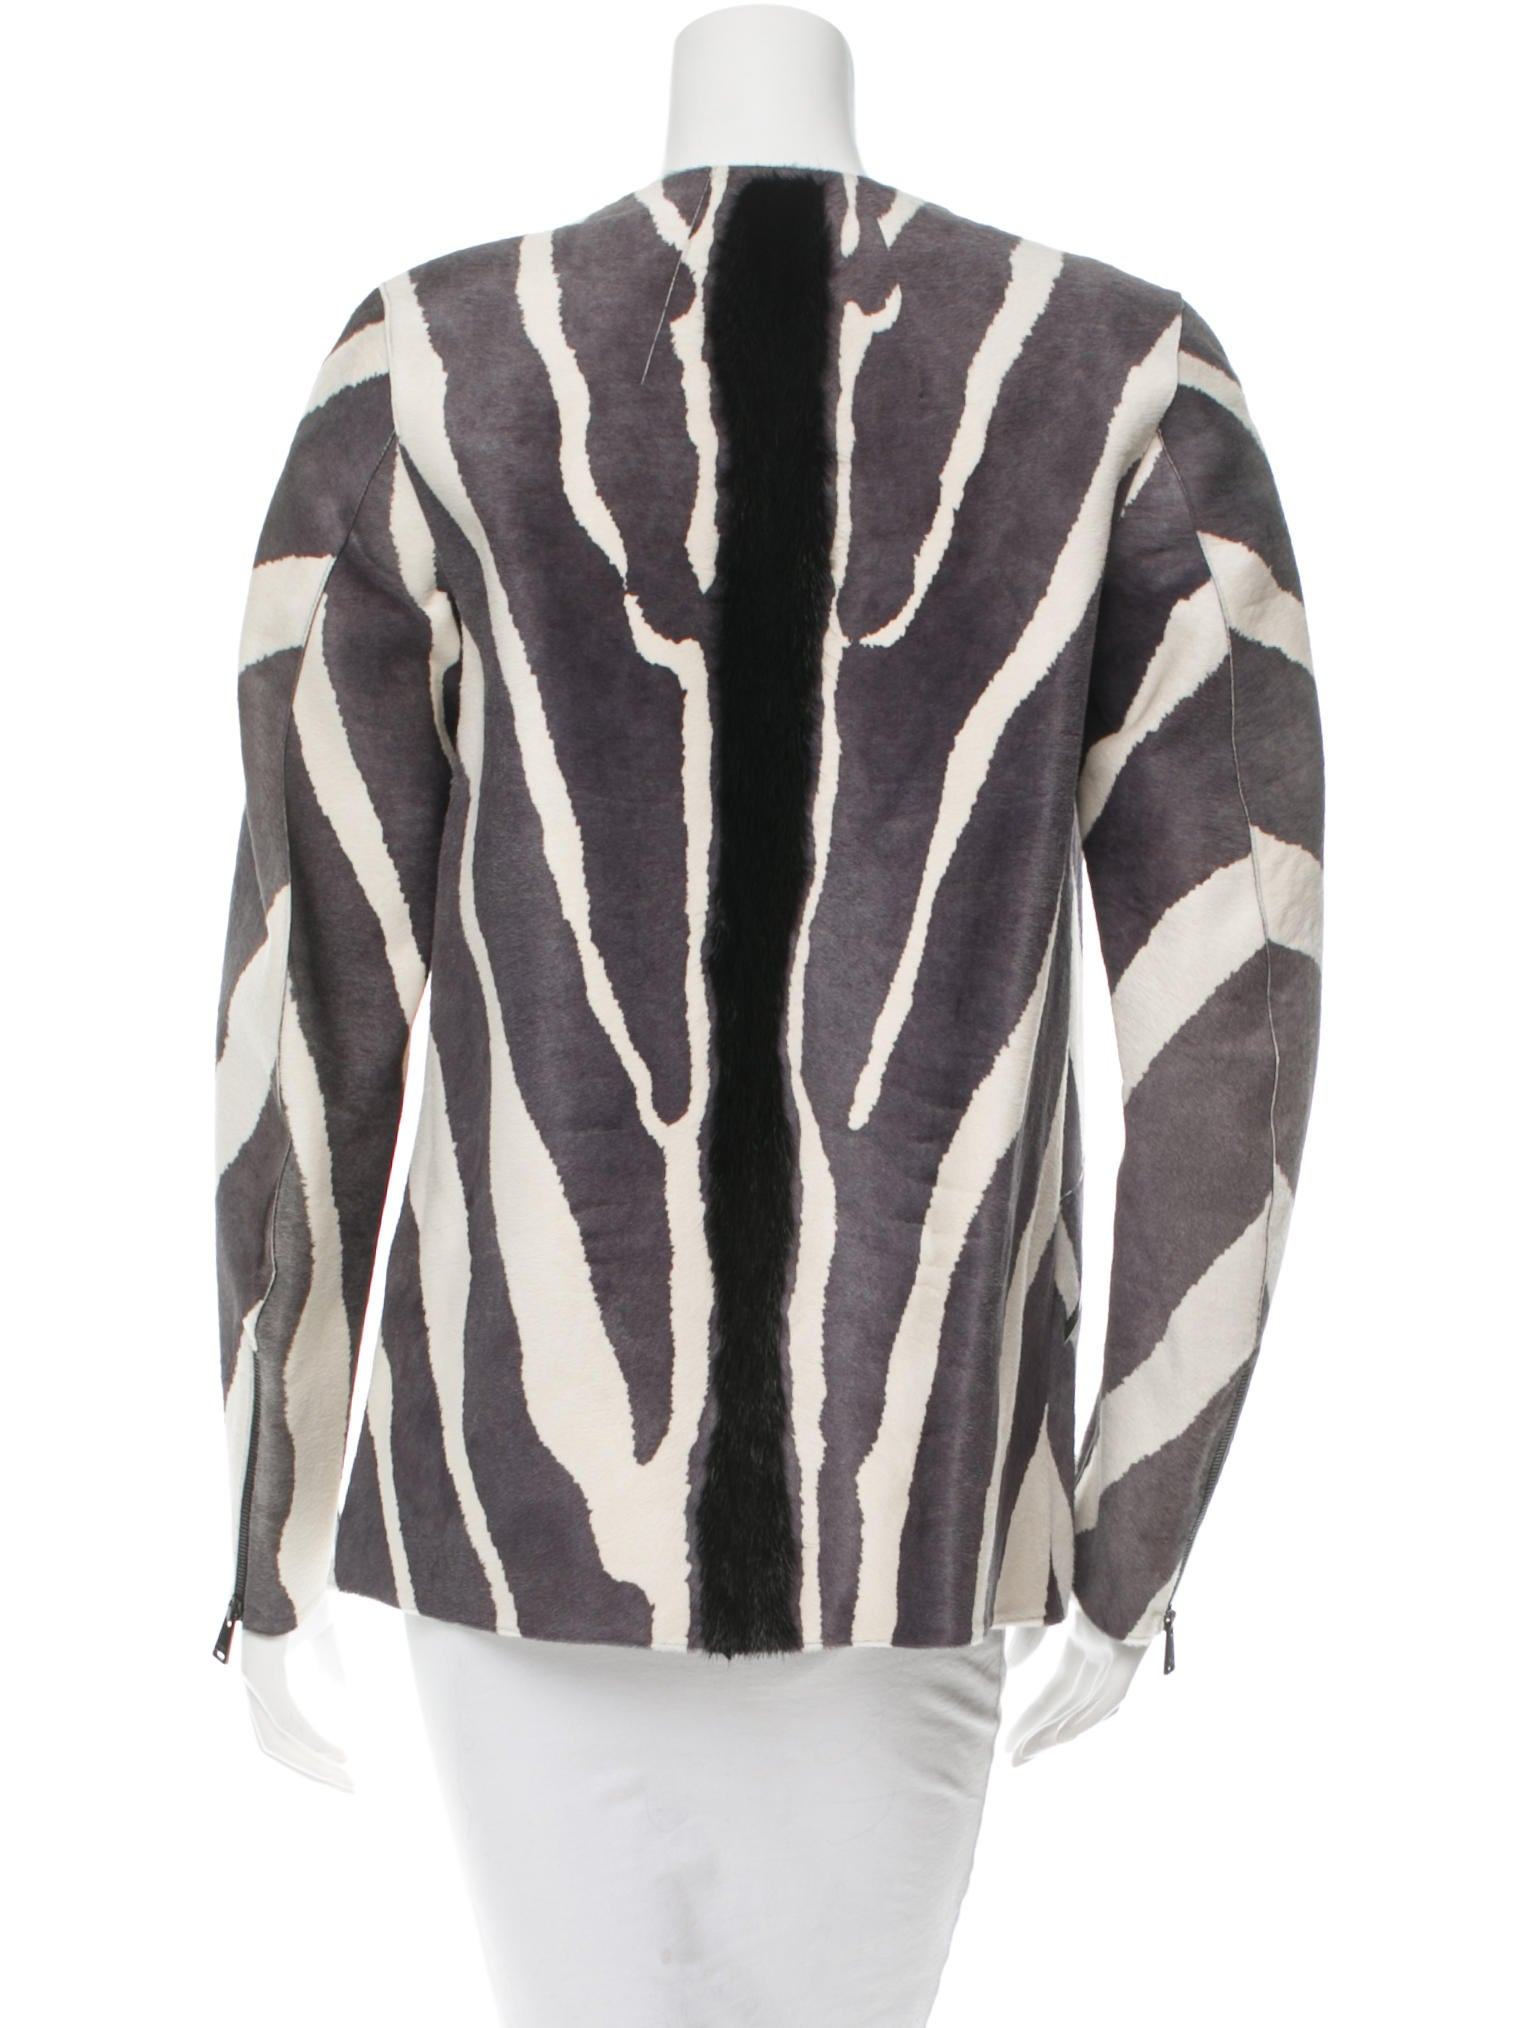 Shop for and buy zebra print online at Macy's. Find zebra print at Macy's.